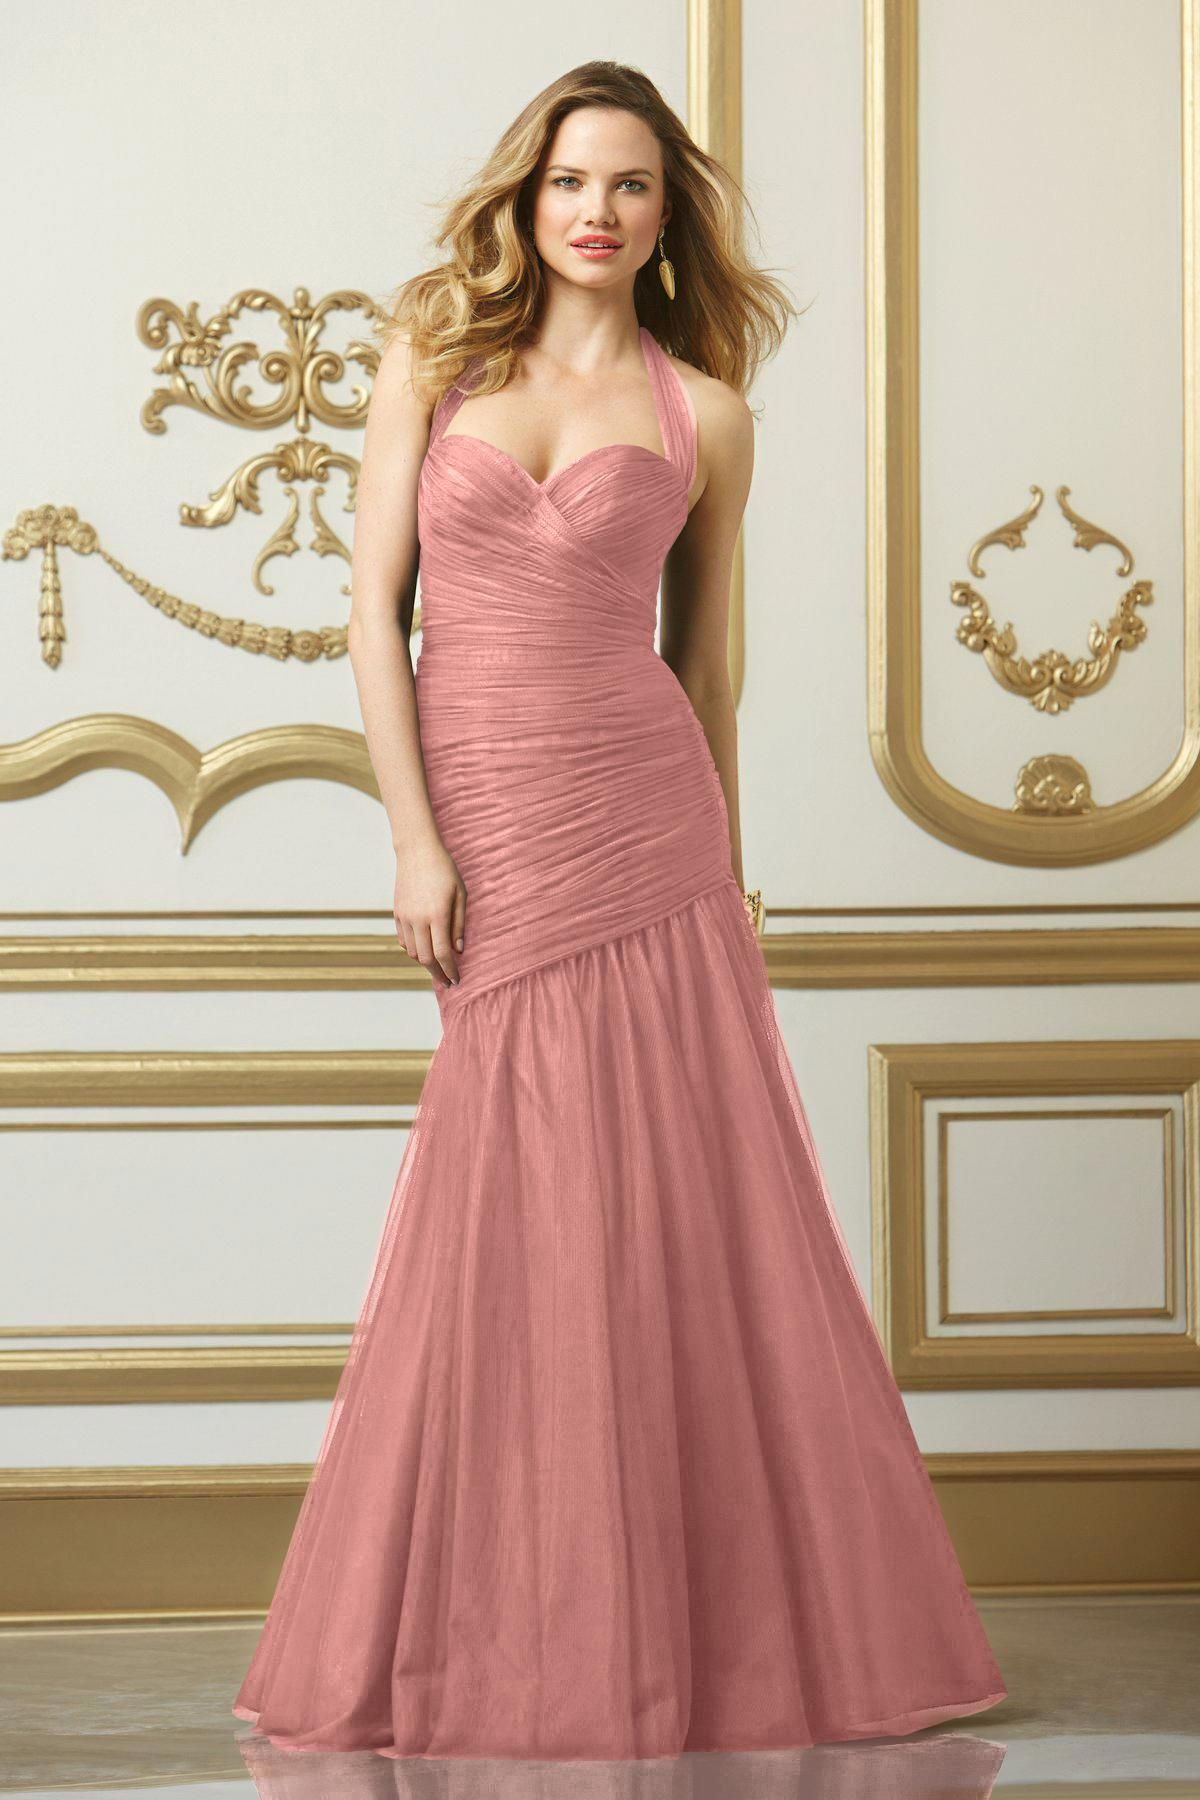 501 Maid of Honor   Bridal Party Looks and Dresses   Pinterest